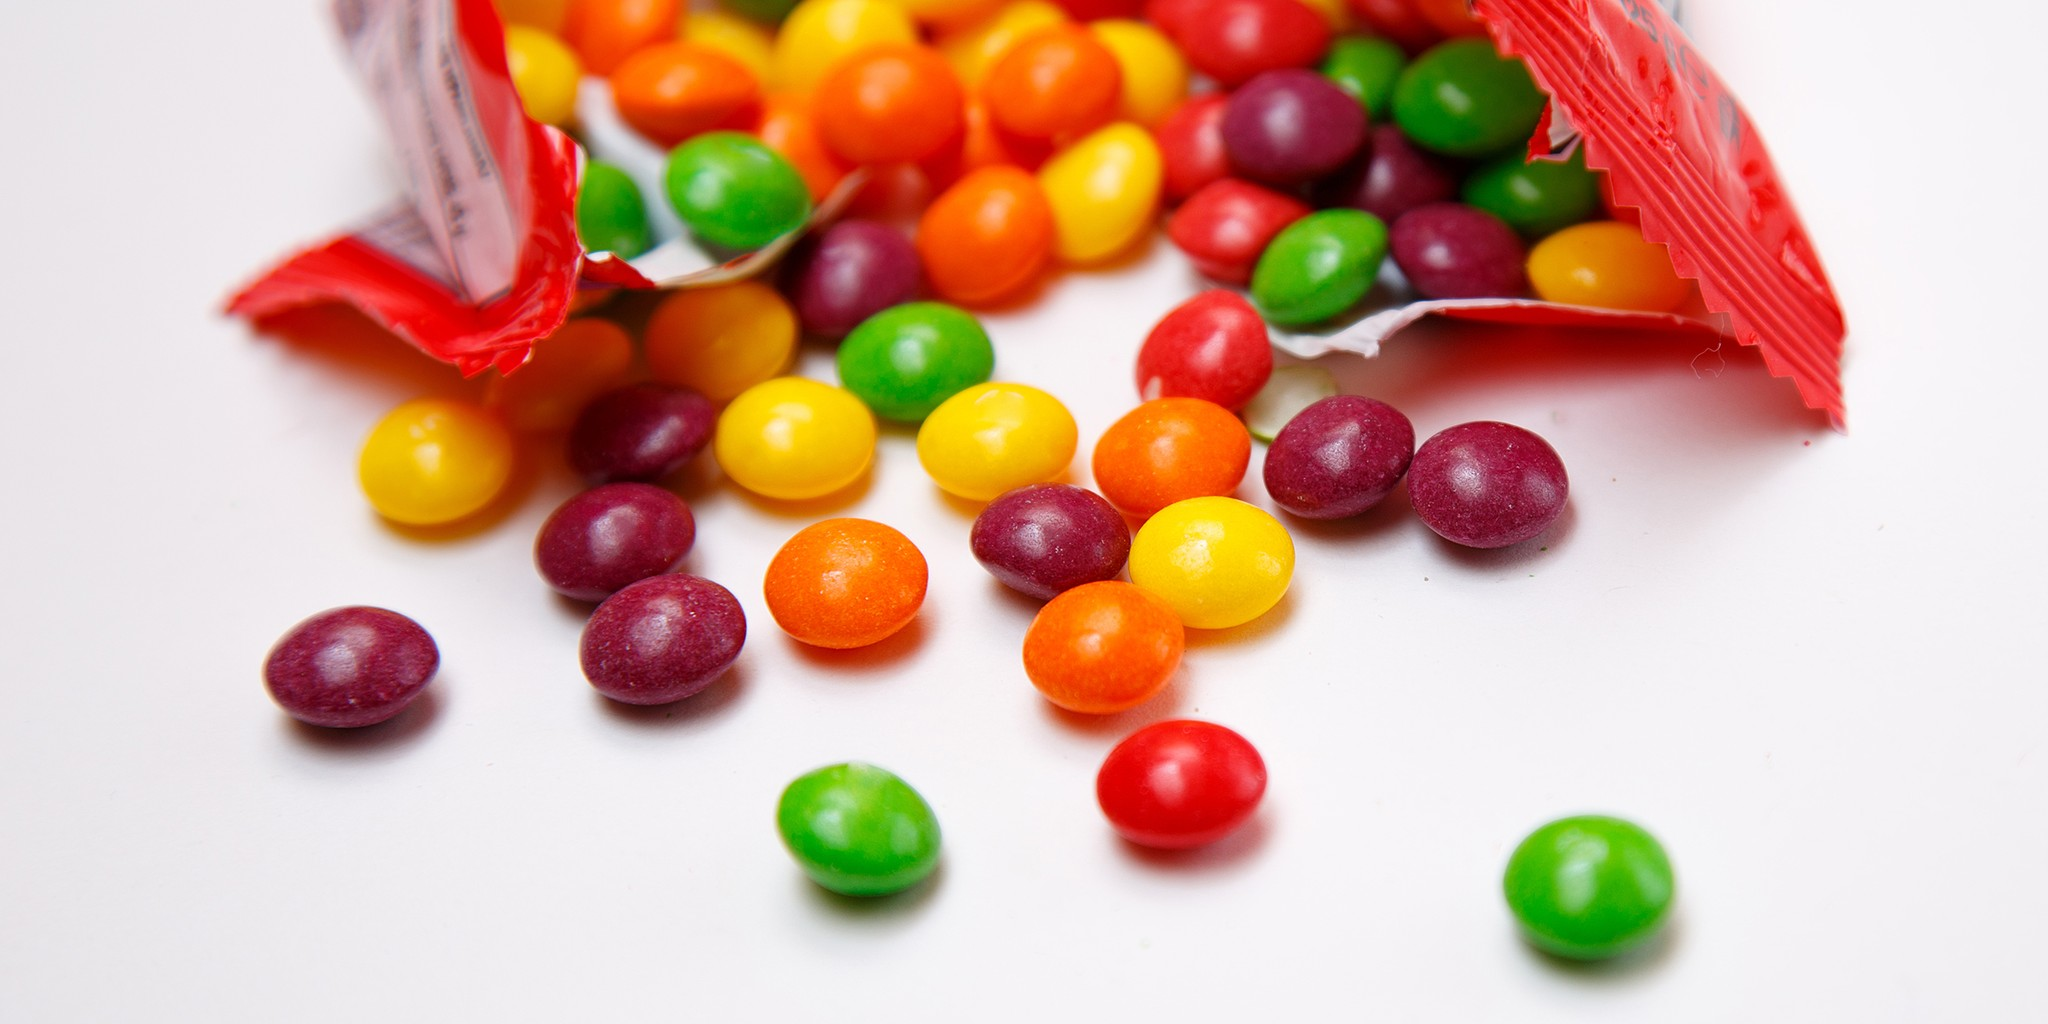 Skittles candy pouring out of a bag